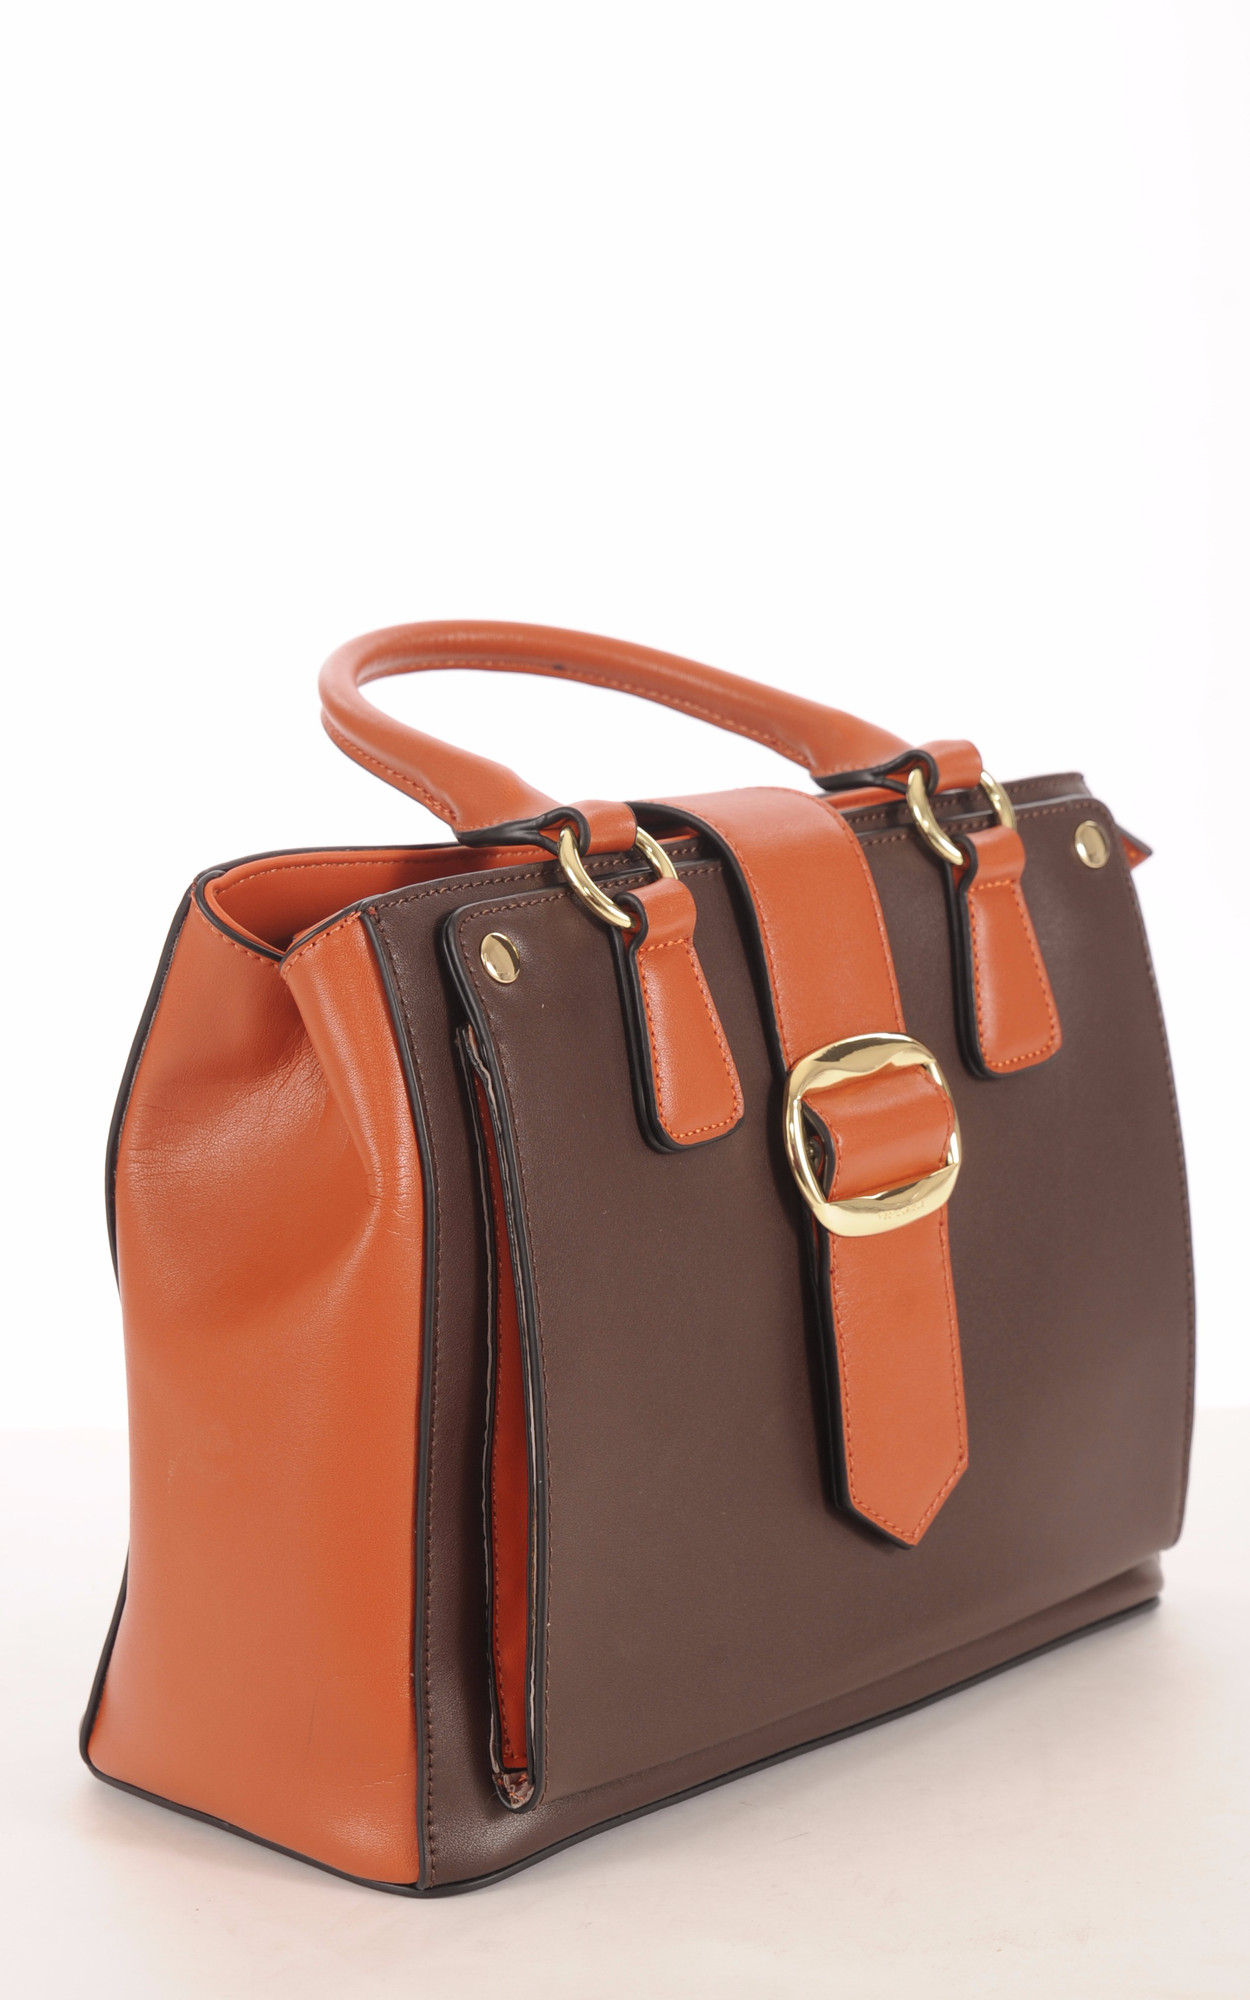 Sac Cuir Vachette Bicolore Chocolat et Orange